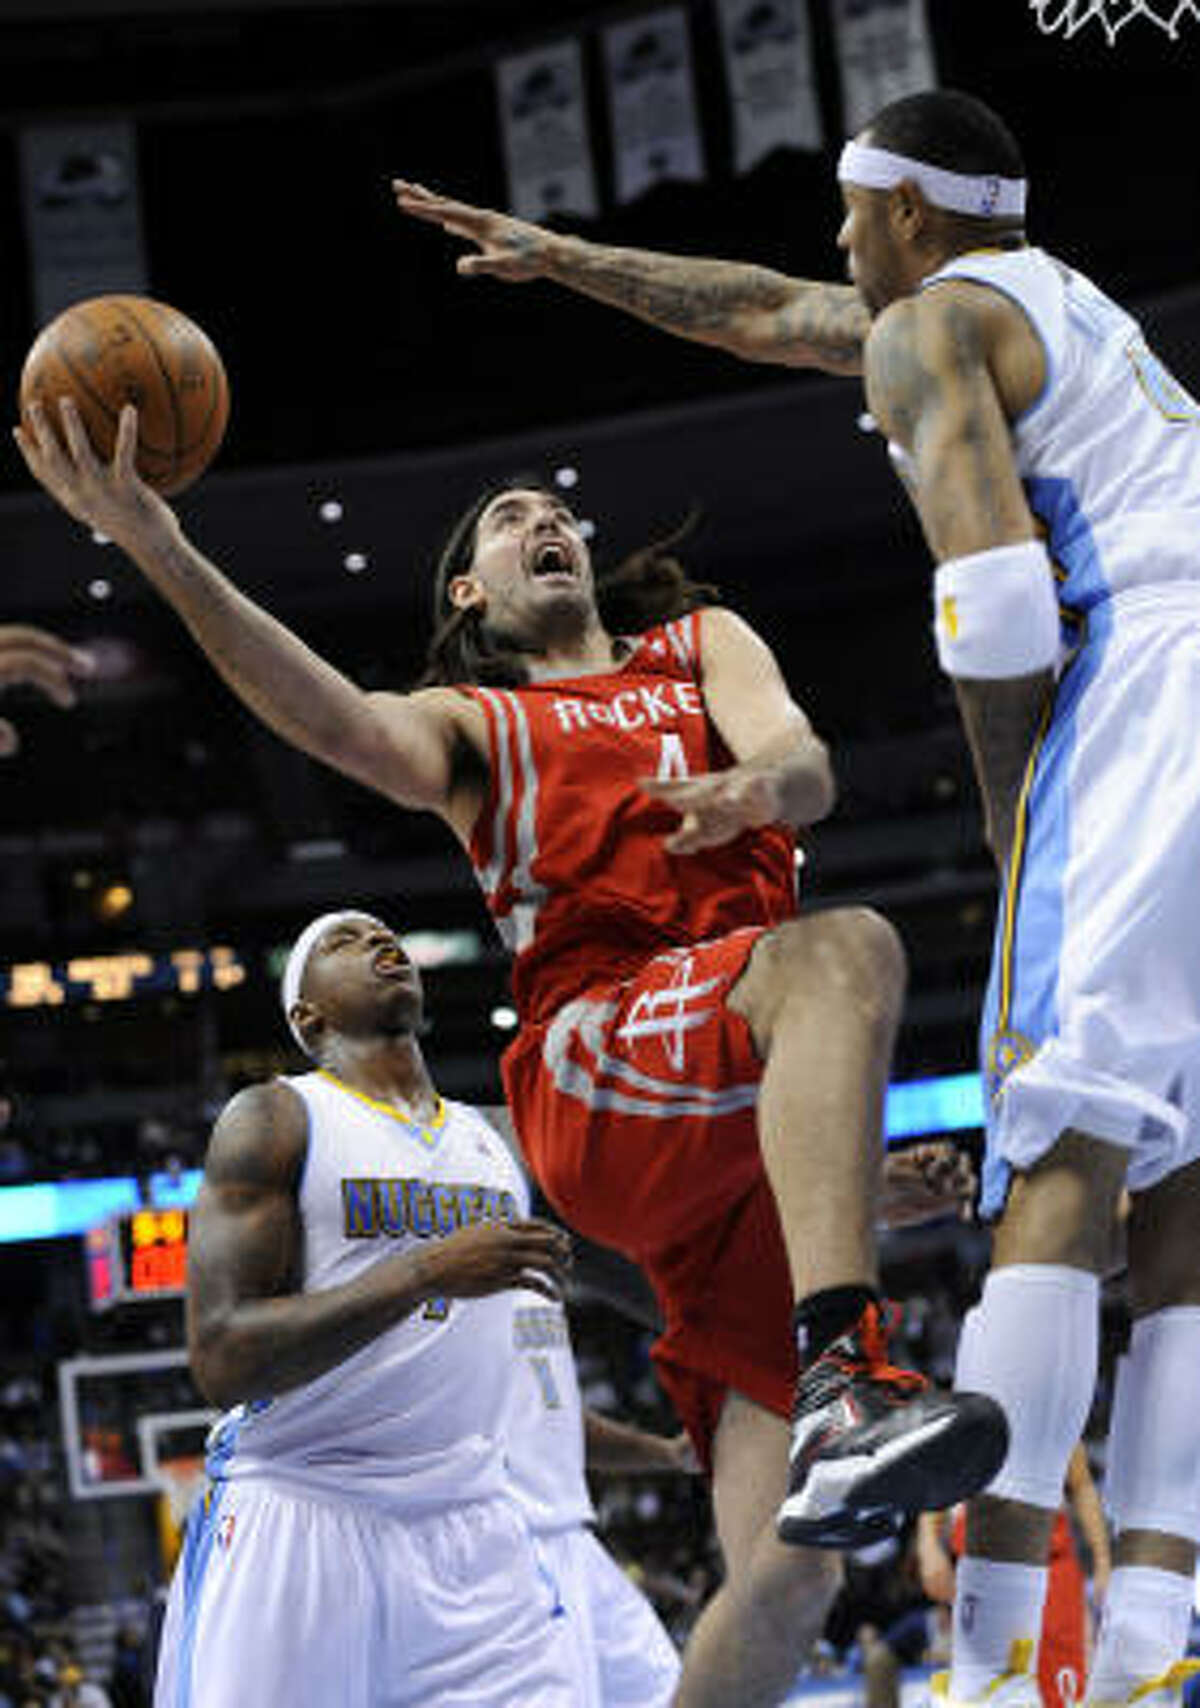 Rockets forward Luis Scola (4) goes up for a shot against Nuggets forward Kenyon Martin (4) as Al Harrington (7) watches the play.